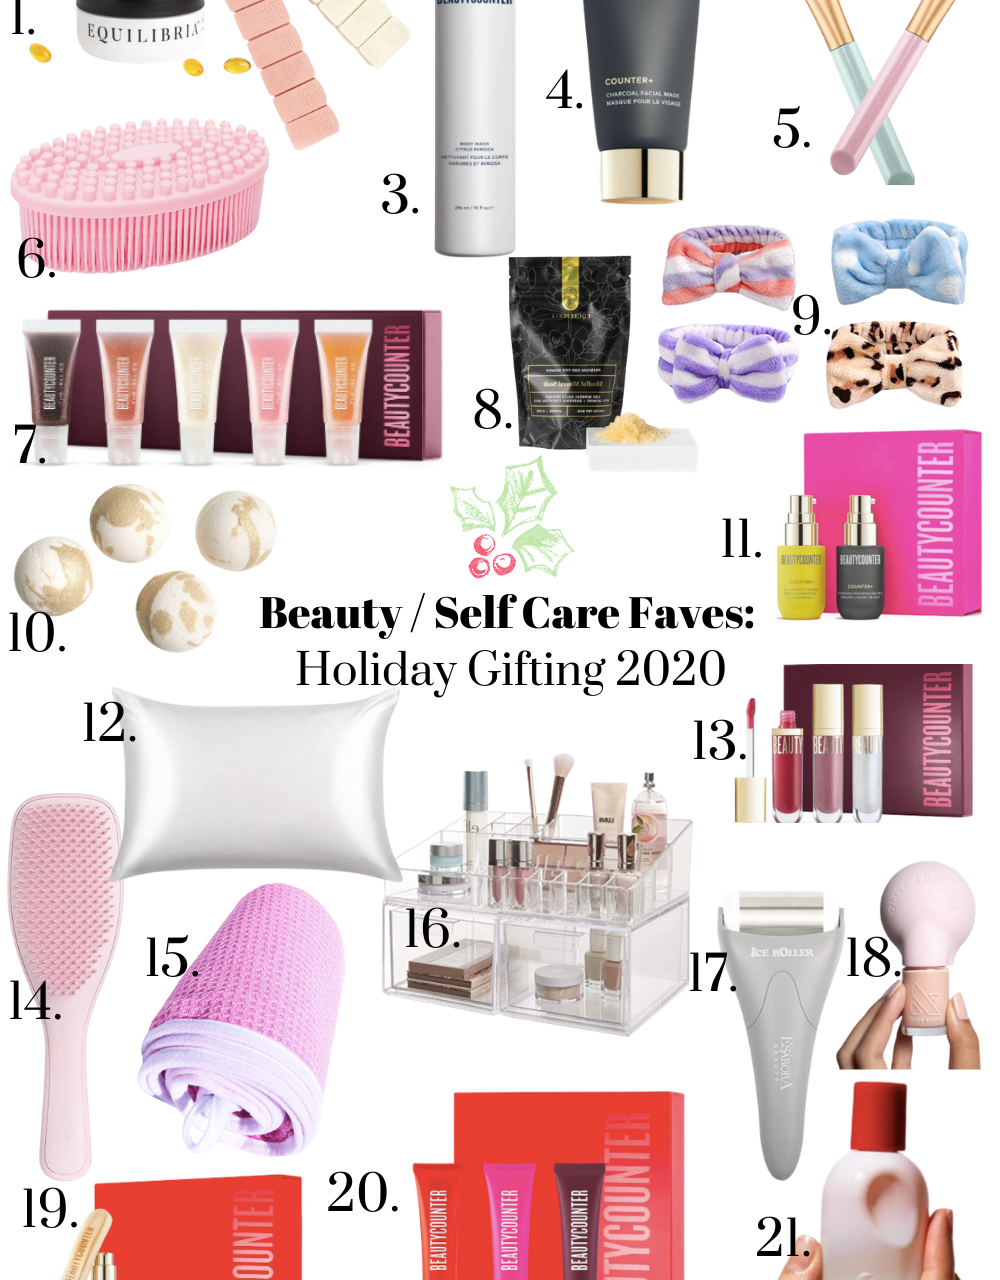 Beauty + Self Care Favorites: Holiday 2020 Gift Guide